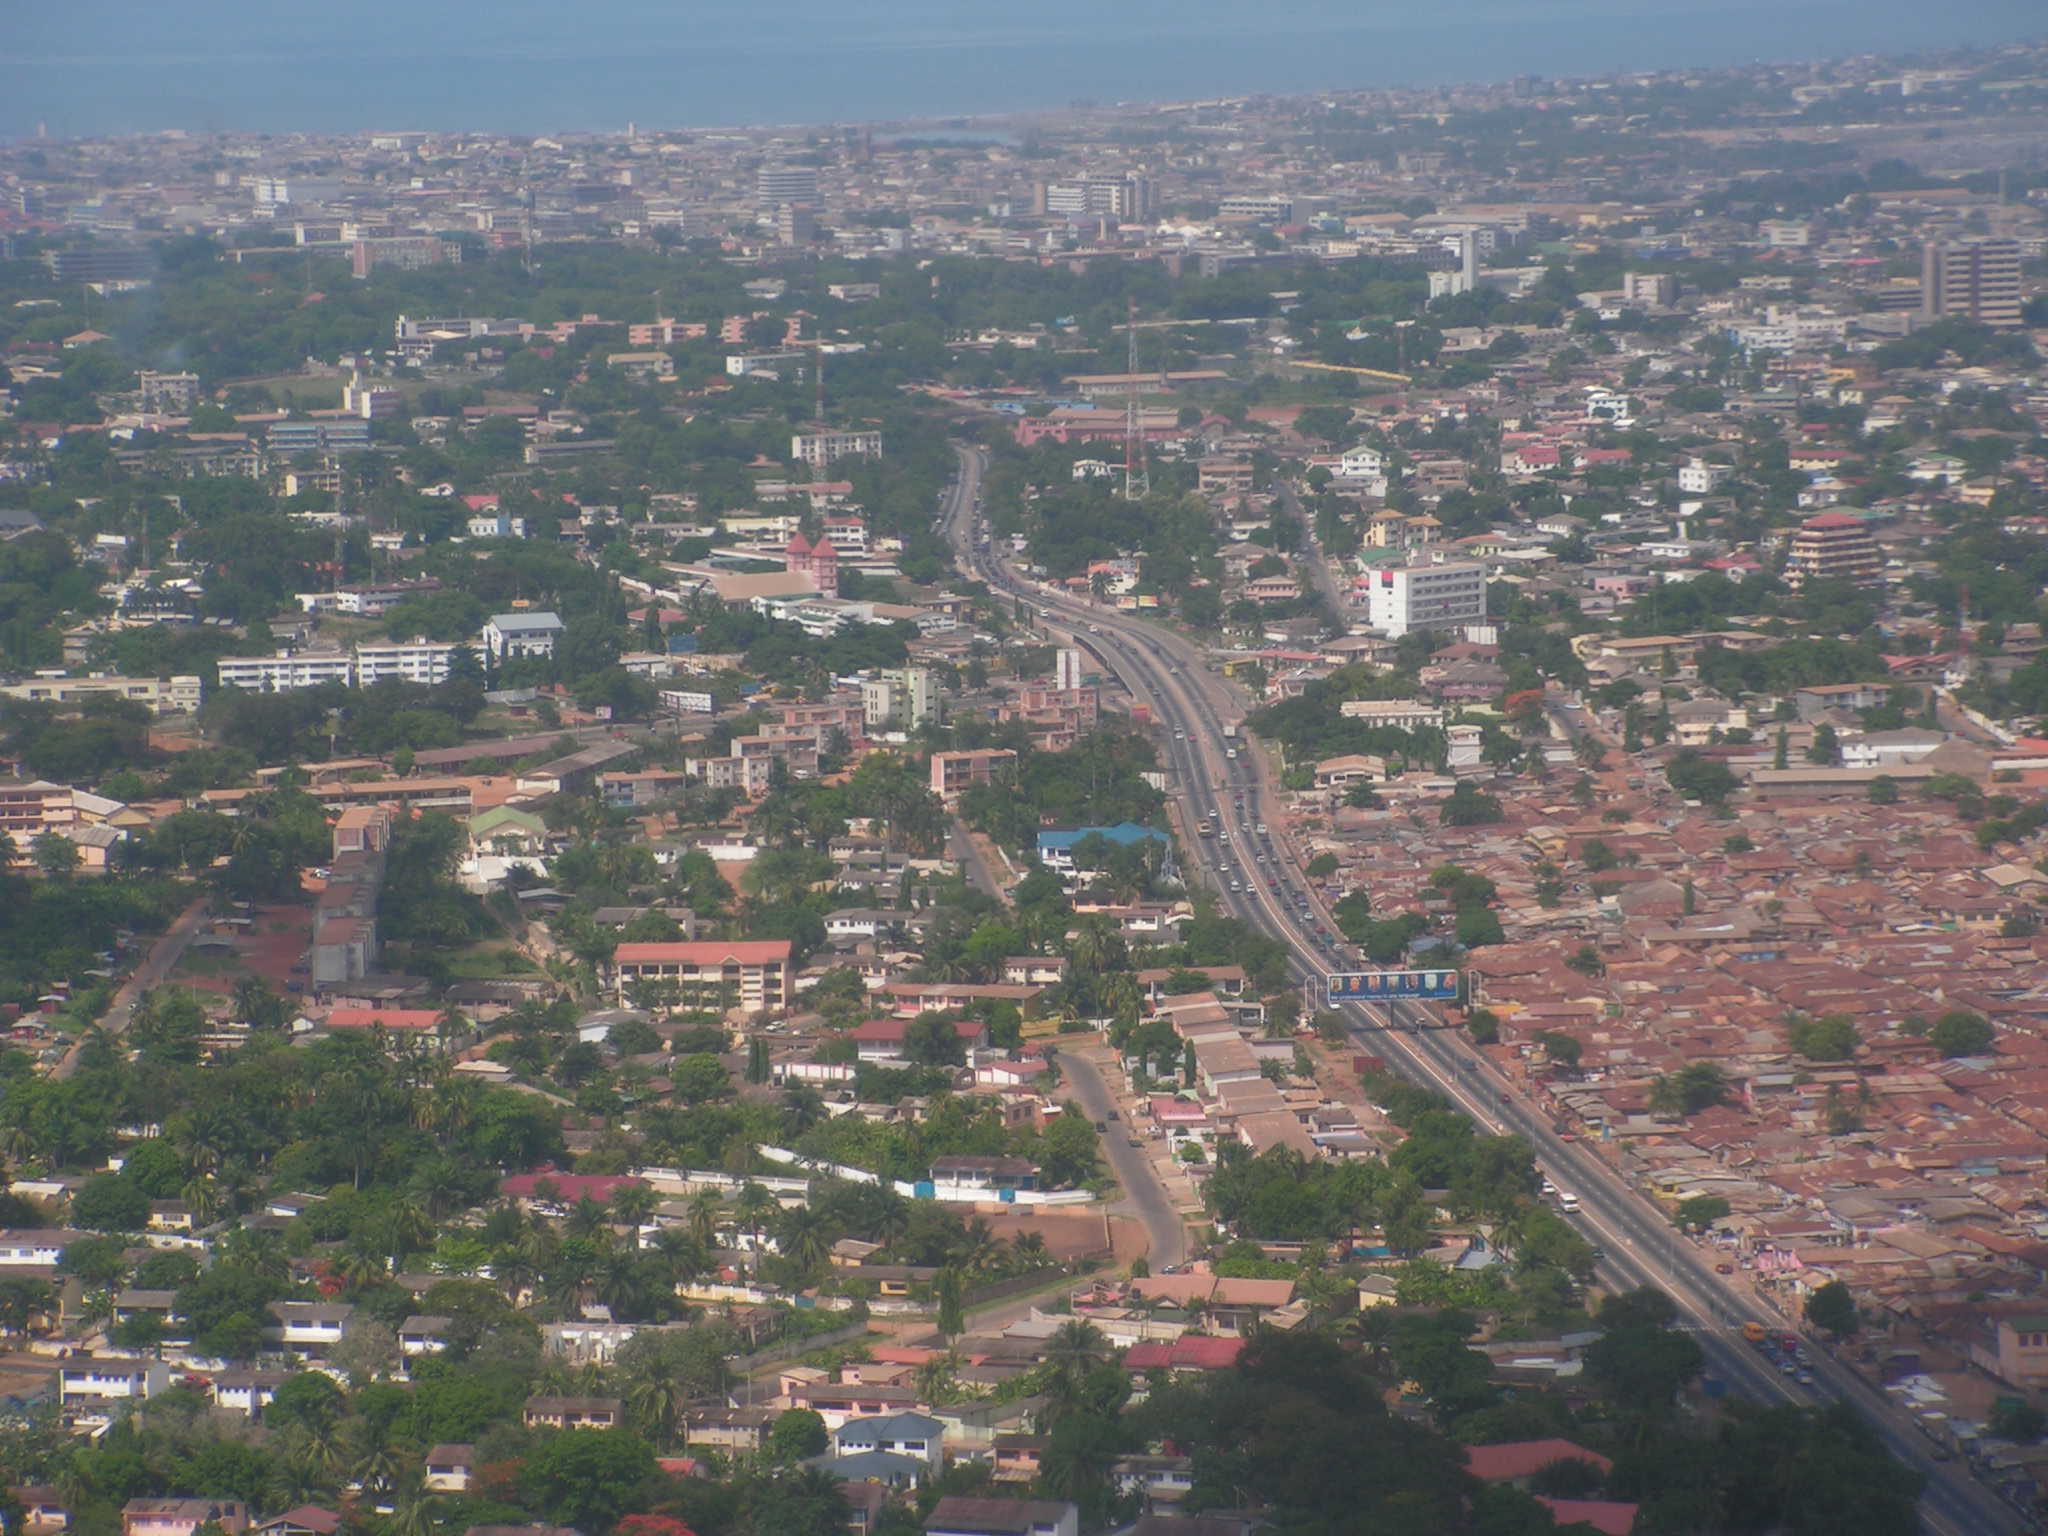 aerial camera with File Nima Highway  Accra  Ghana on Remote Sensing additionally File Grass Field   geograph org uk   183289 also Gillette Stadium 3 moreover 19438641 as well File Nima highway  Accra  Ghana.